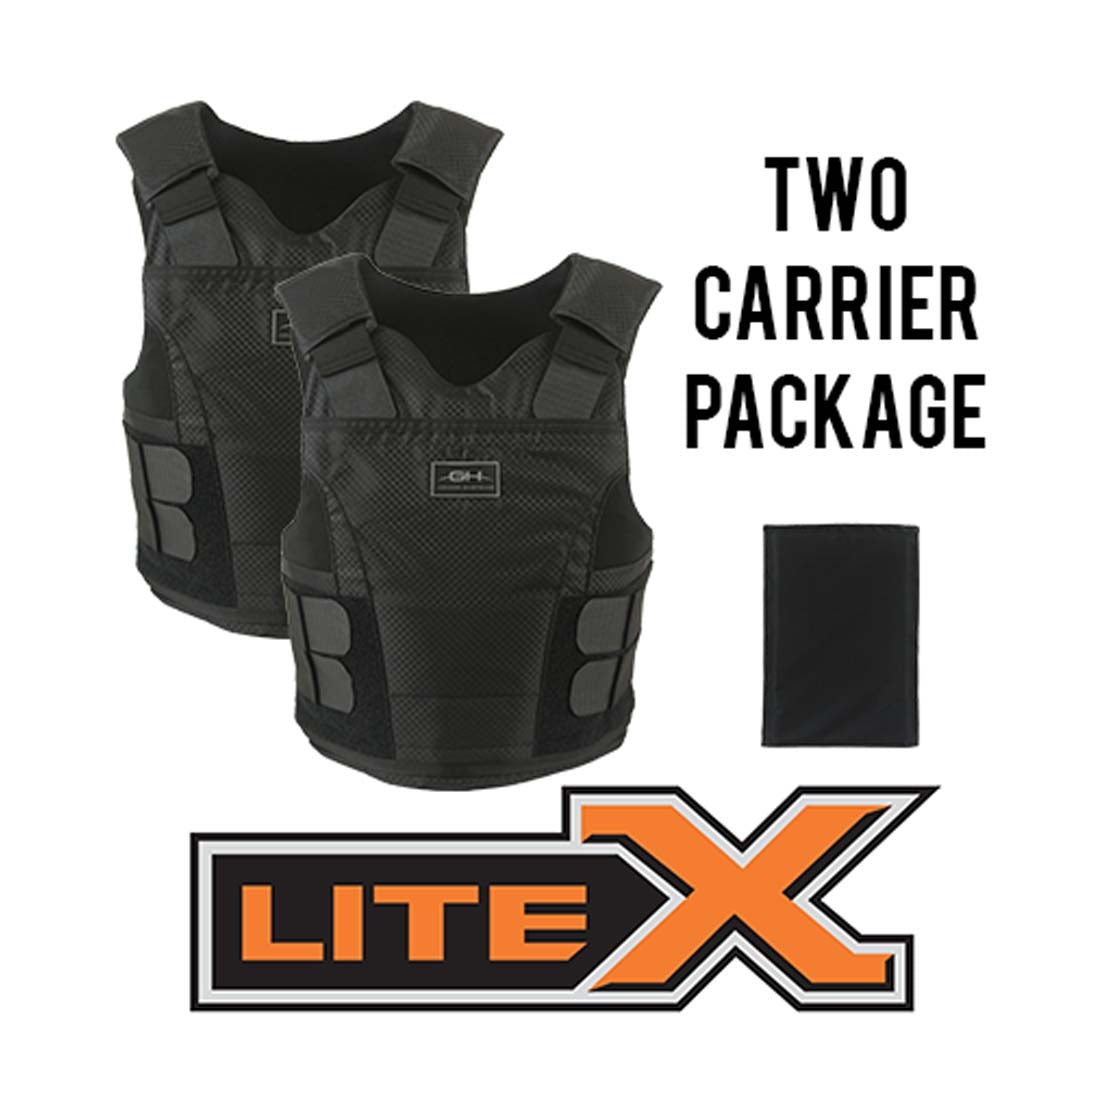 Concealable Body Armor - Litex II